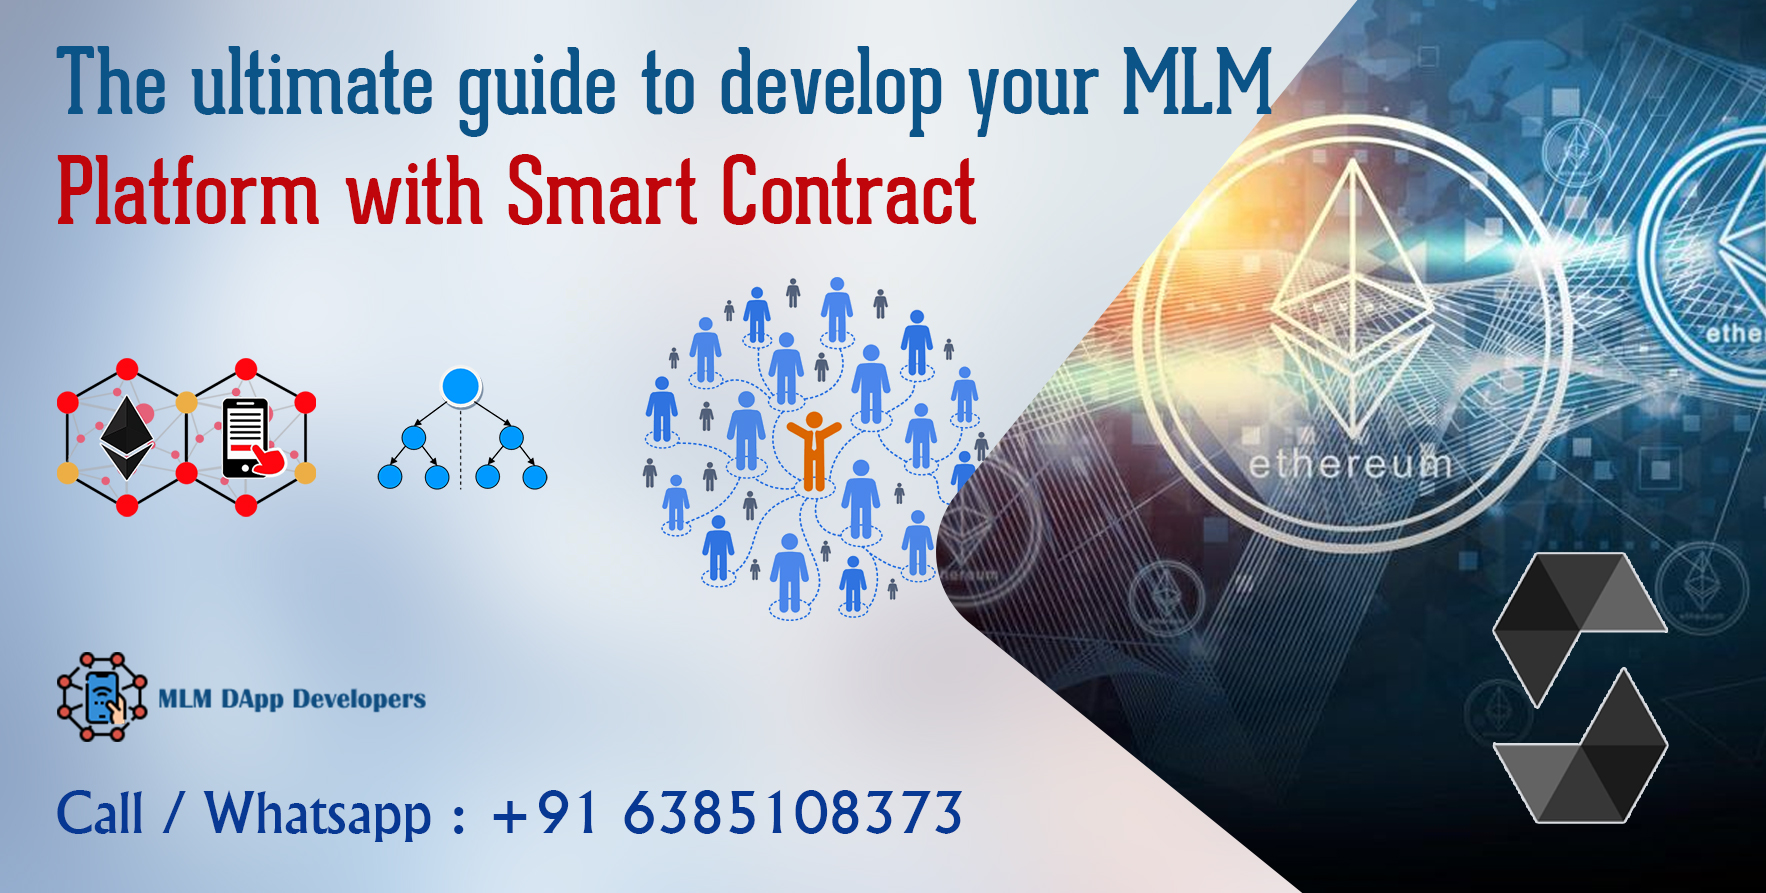 Decentralized MLM Matrix Plan Software with DApp smart contract